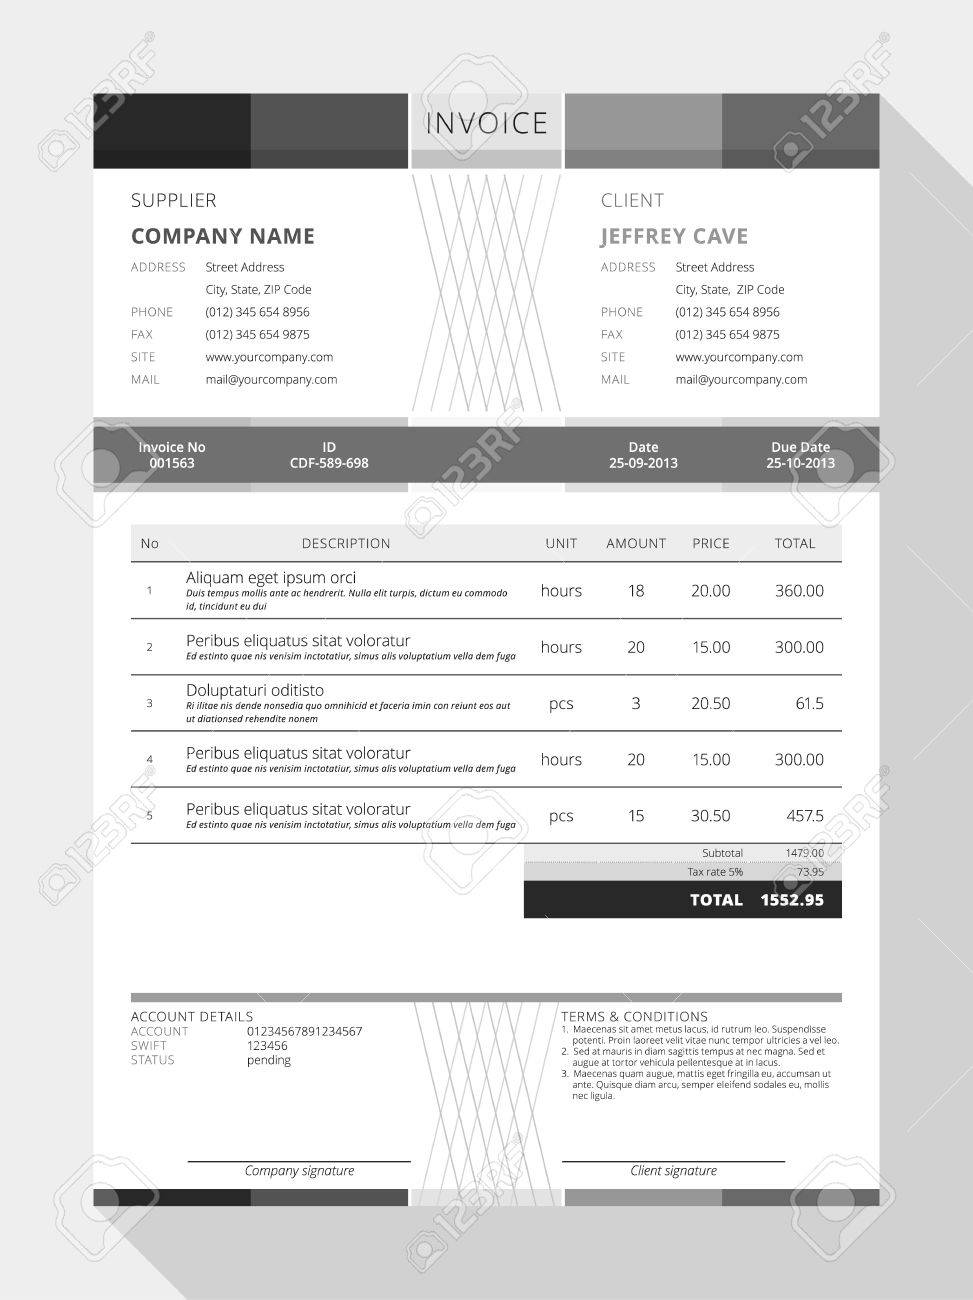 Modaoxus  Pleasing Design An Invoice  Professional Graphic Design Invoice  With Foxy Vector Customizable Invoice Form Template Design Vector   Design An Invoice With Beauteous Product Invoice Template Also How To Make Your Own Invoice In Addition Commercial Invoice Fed Ex And Invoice Document Template As Well As How Do You Create An Invoice Additionally Design Invoices From Happytomco With Modaoxus  Foxy Design An Invoice  Professional Graphic Design Invoice  With Beauteous Vector Customizable Invoice Form Template Design Vector   Design An Invoice And Pleasing Product Invoice Template Also How To Make Your Own Invoice In Addition Commercial Invoice Fed Ex From Happytomco